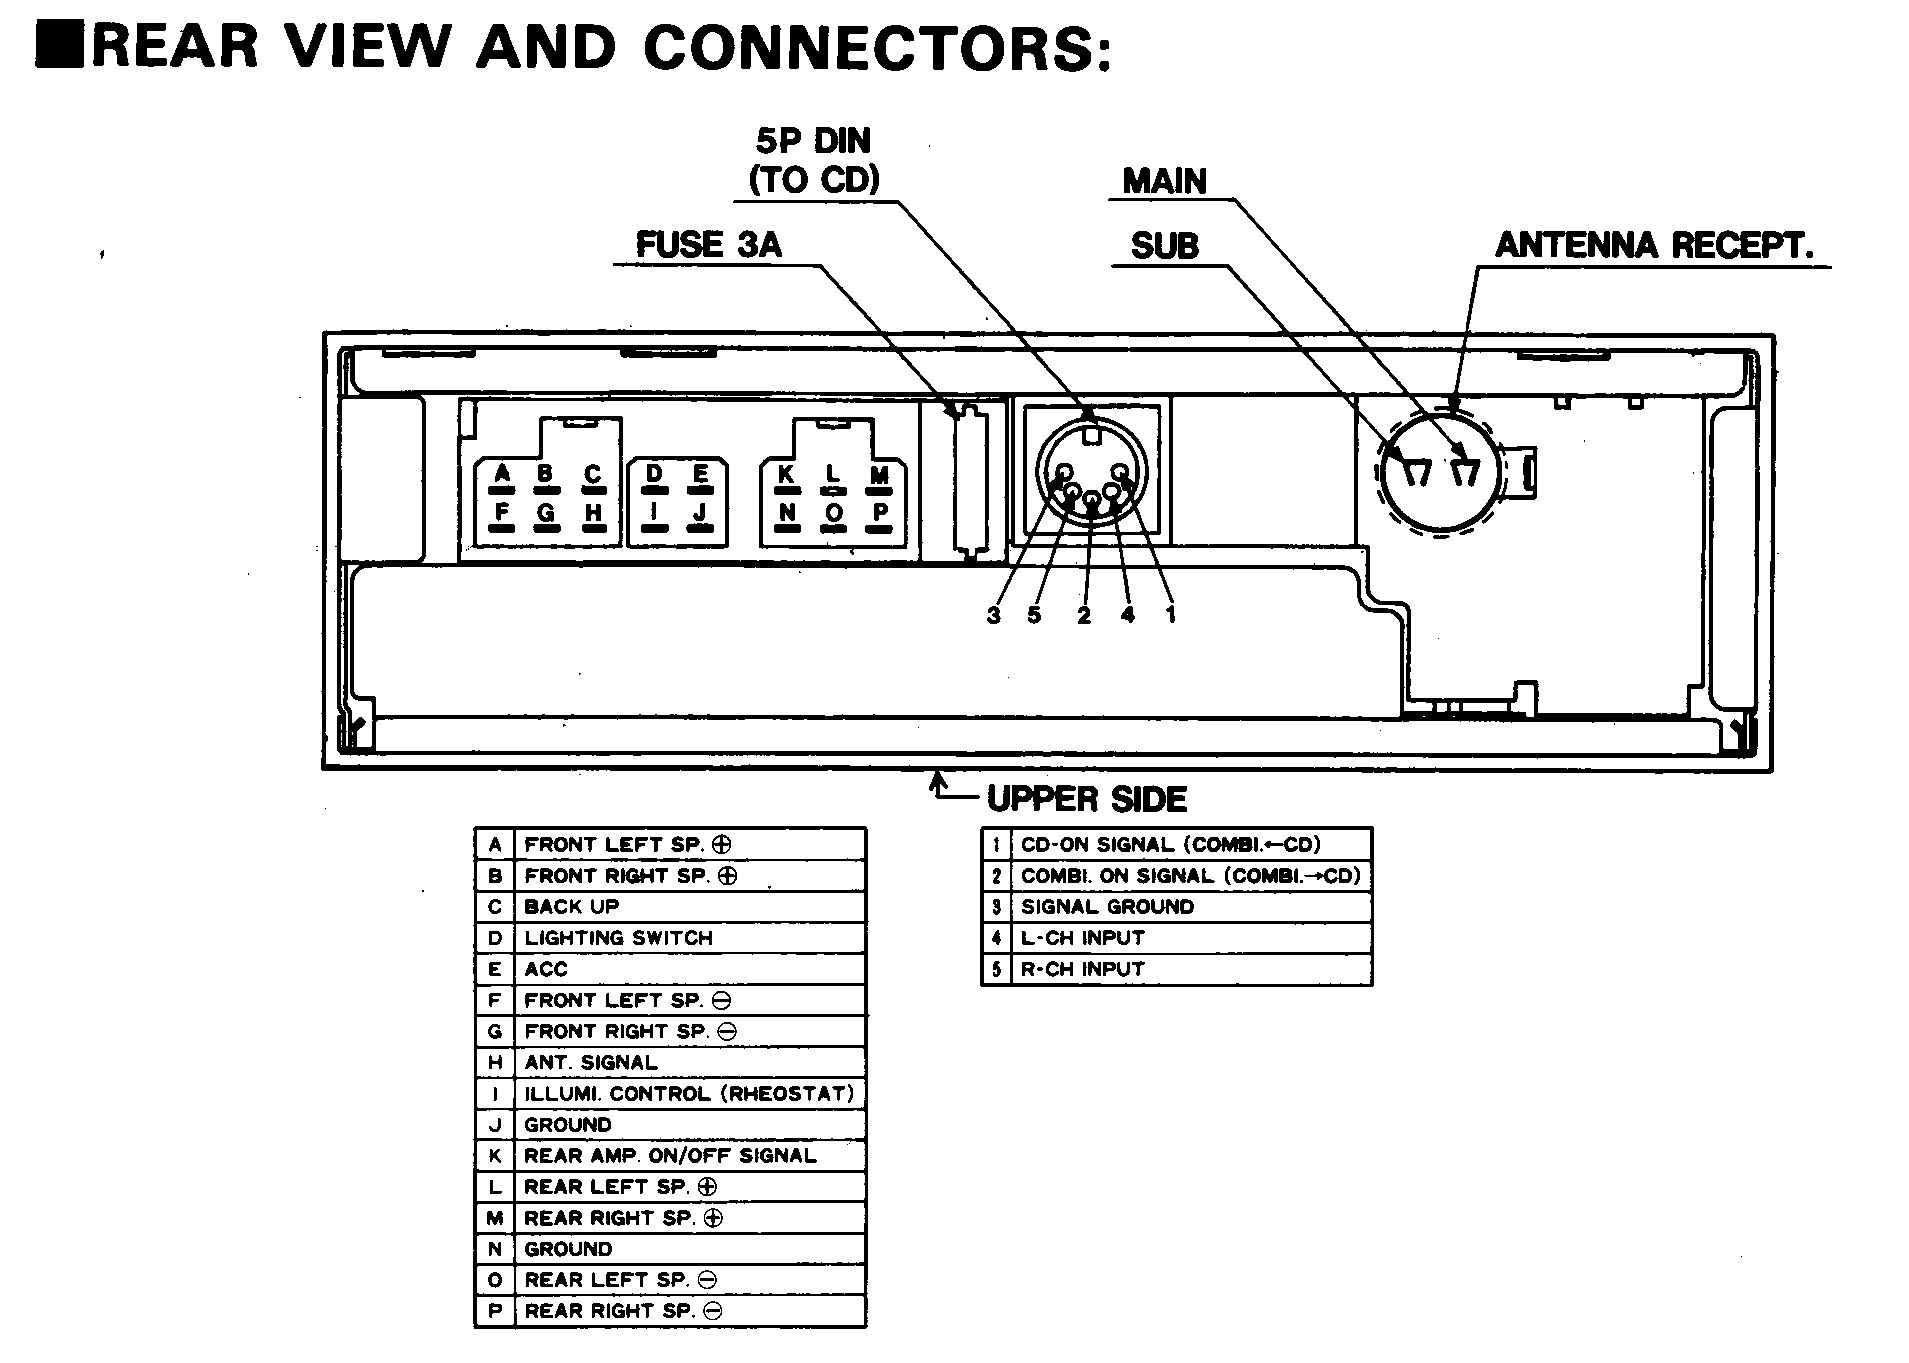 WireHarnessNis03180201 nissan radio wiring diagram nissan dash diagram \u2022 wiring diagrams lq9 wiring harness diagram at gsmportal.co